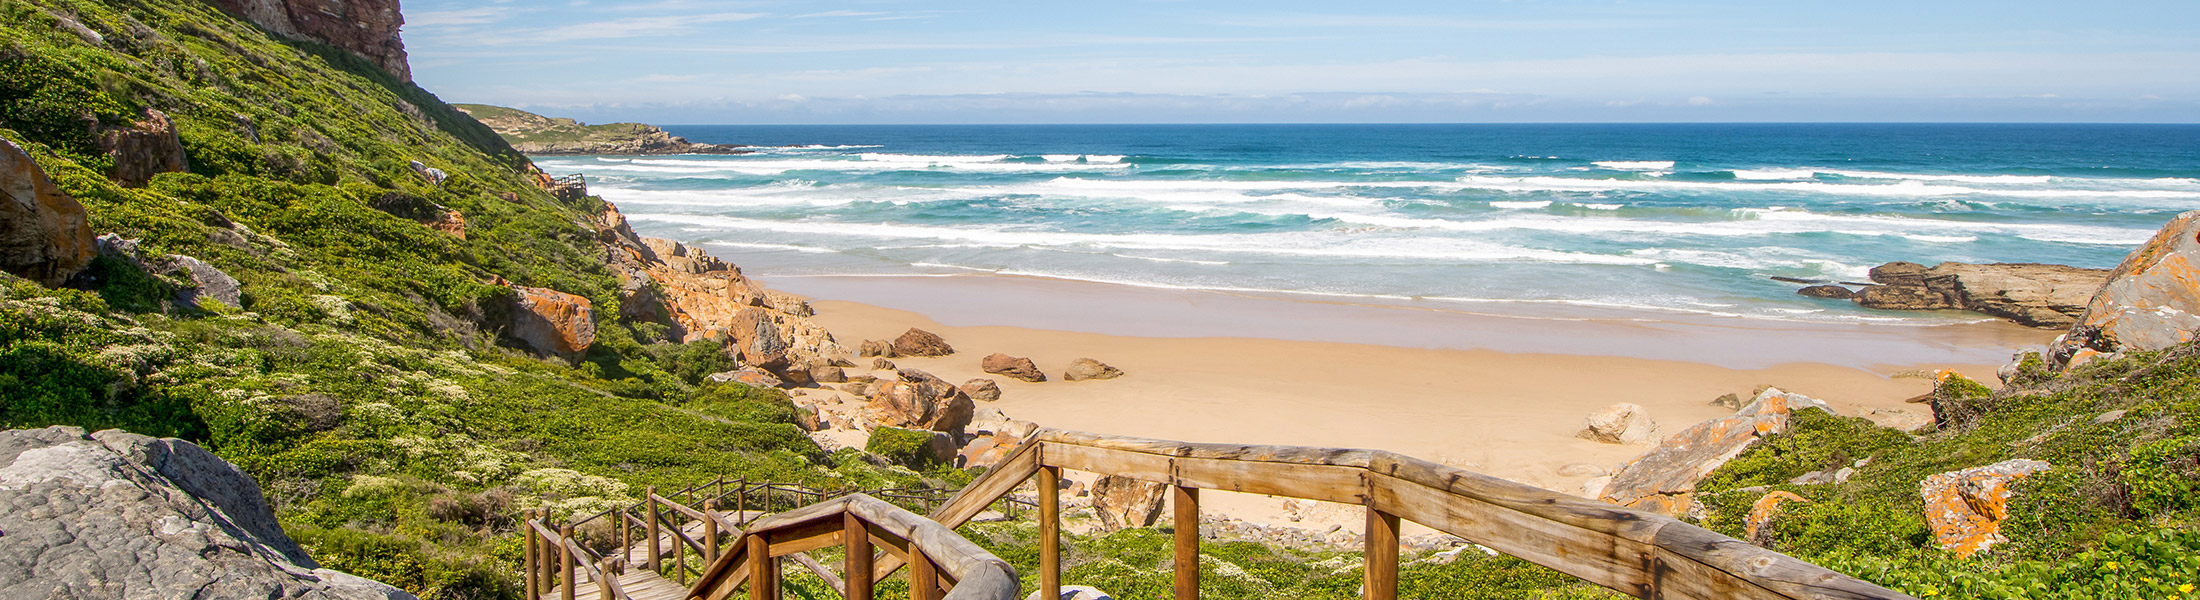 Beach at Robberg Africa